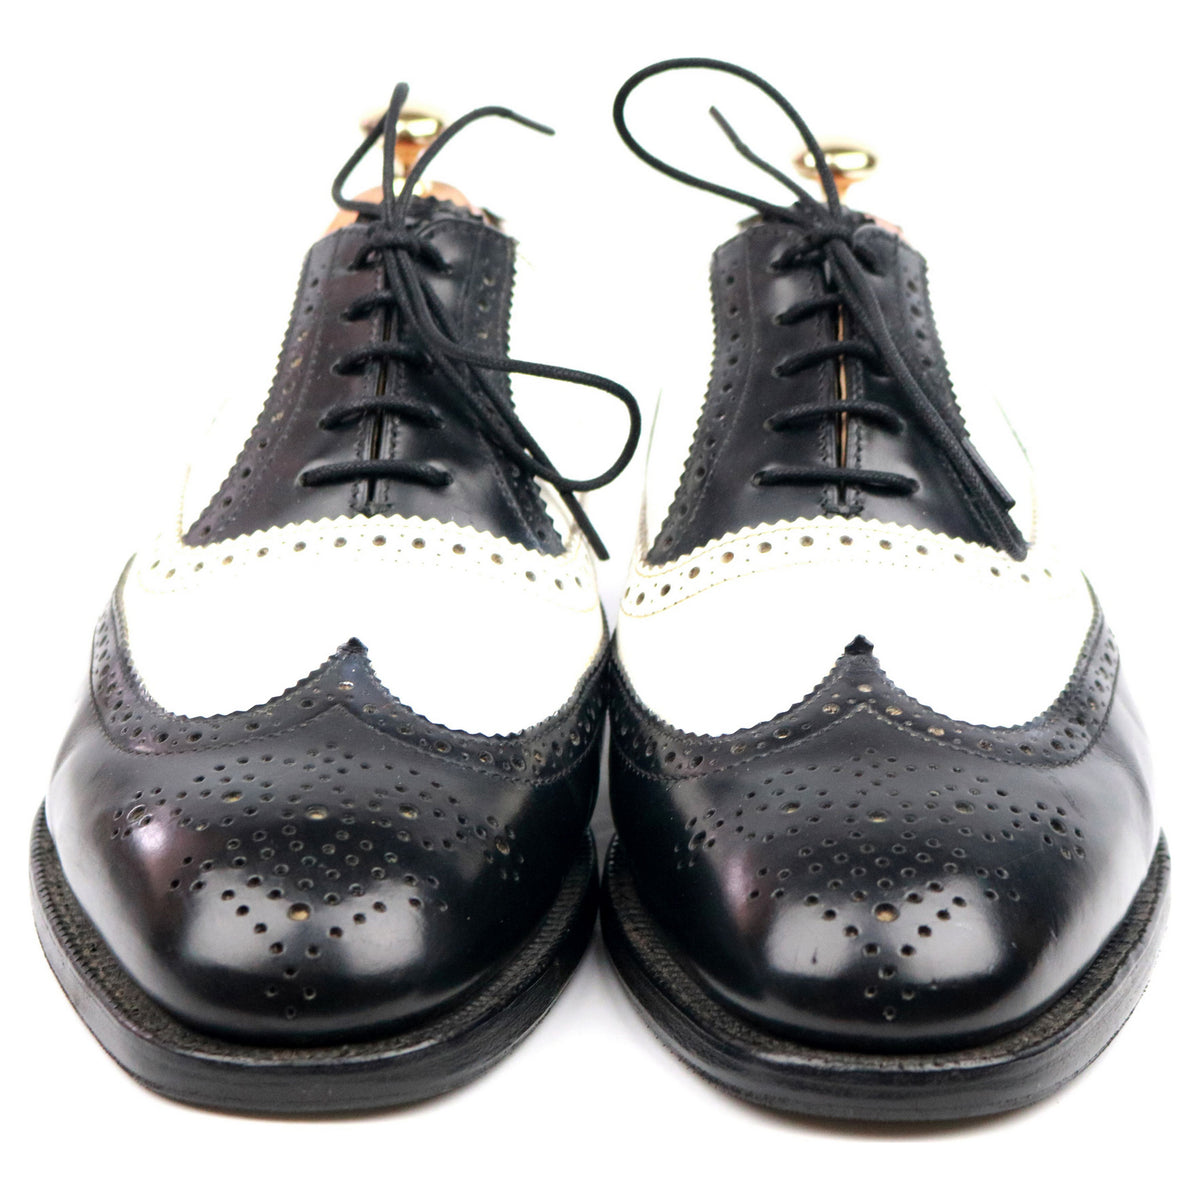 Alfred Sargent 'George' Black White Leather Two Tone Spectator Brogues UK 7.5 F